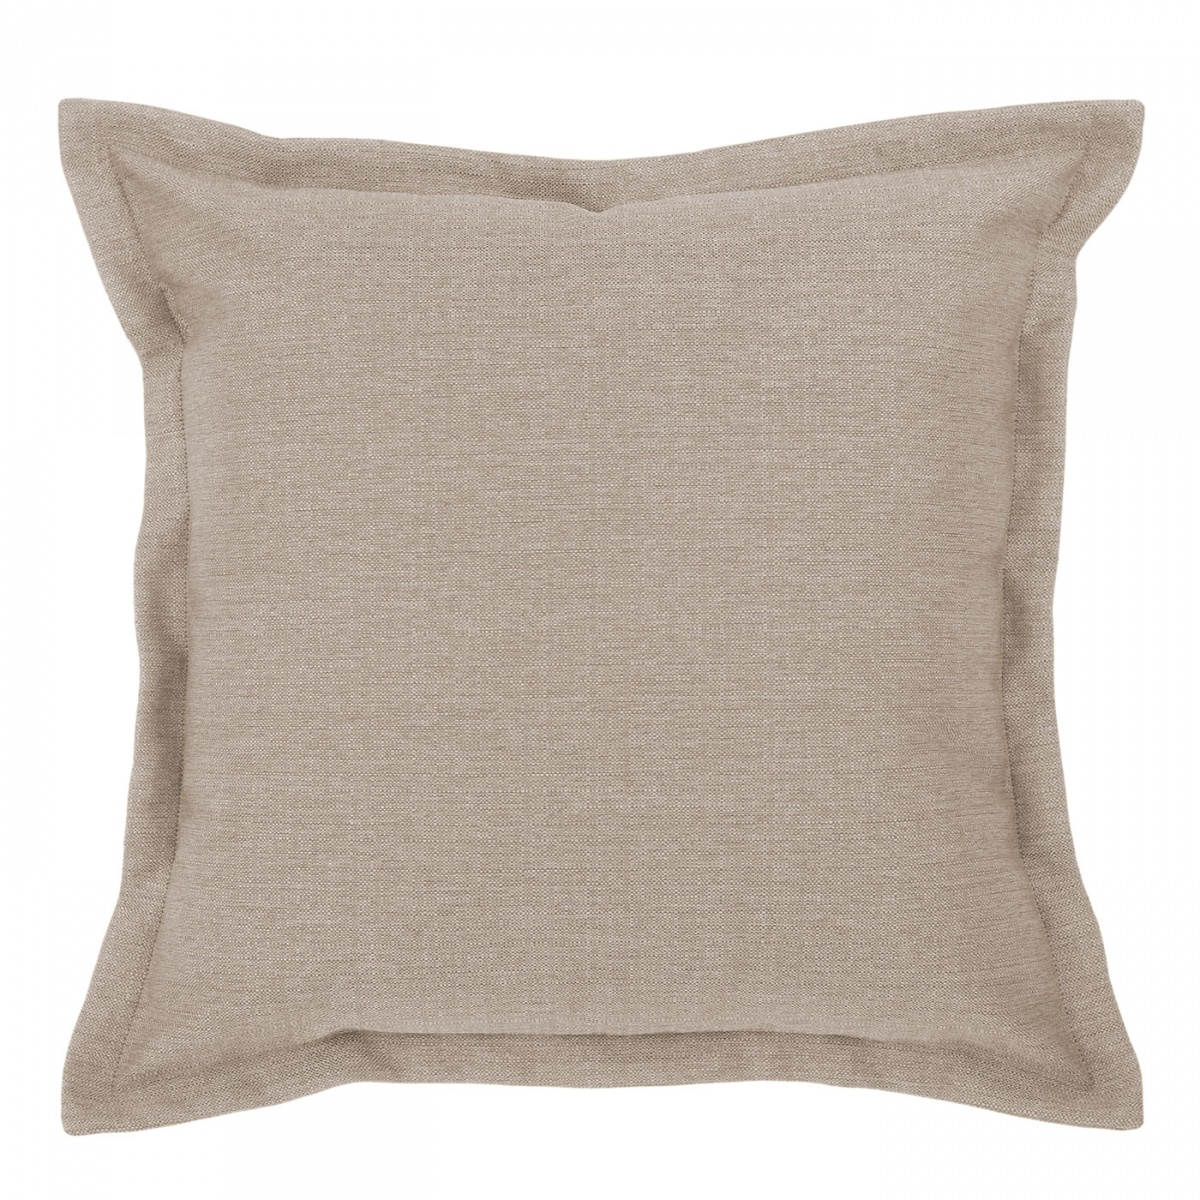 Vegas Mink Cushion with Flange - 45x45cm